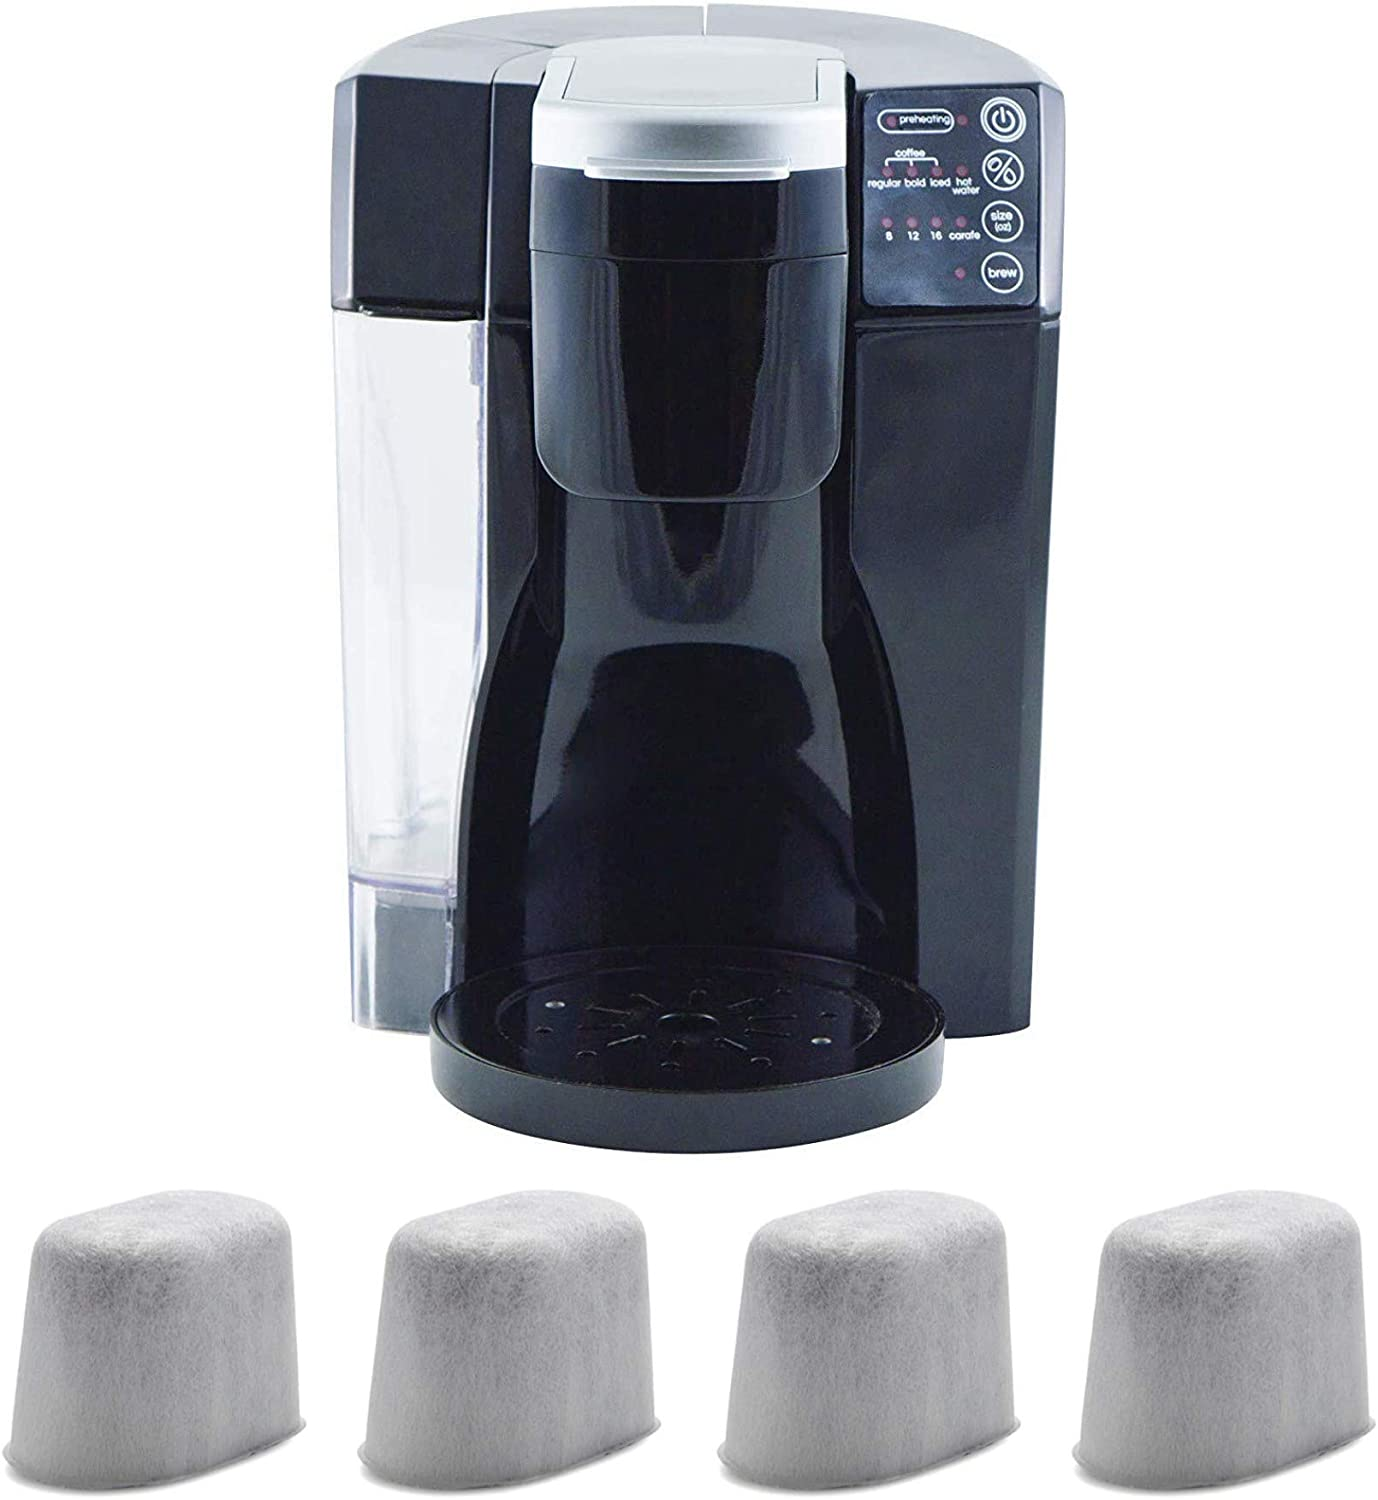 NuWave BruHub Coffee Maker with 40 oz. Carafe and 4 Pack Replacement Filters